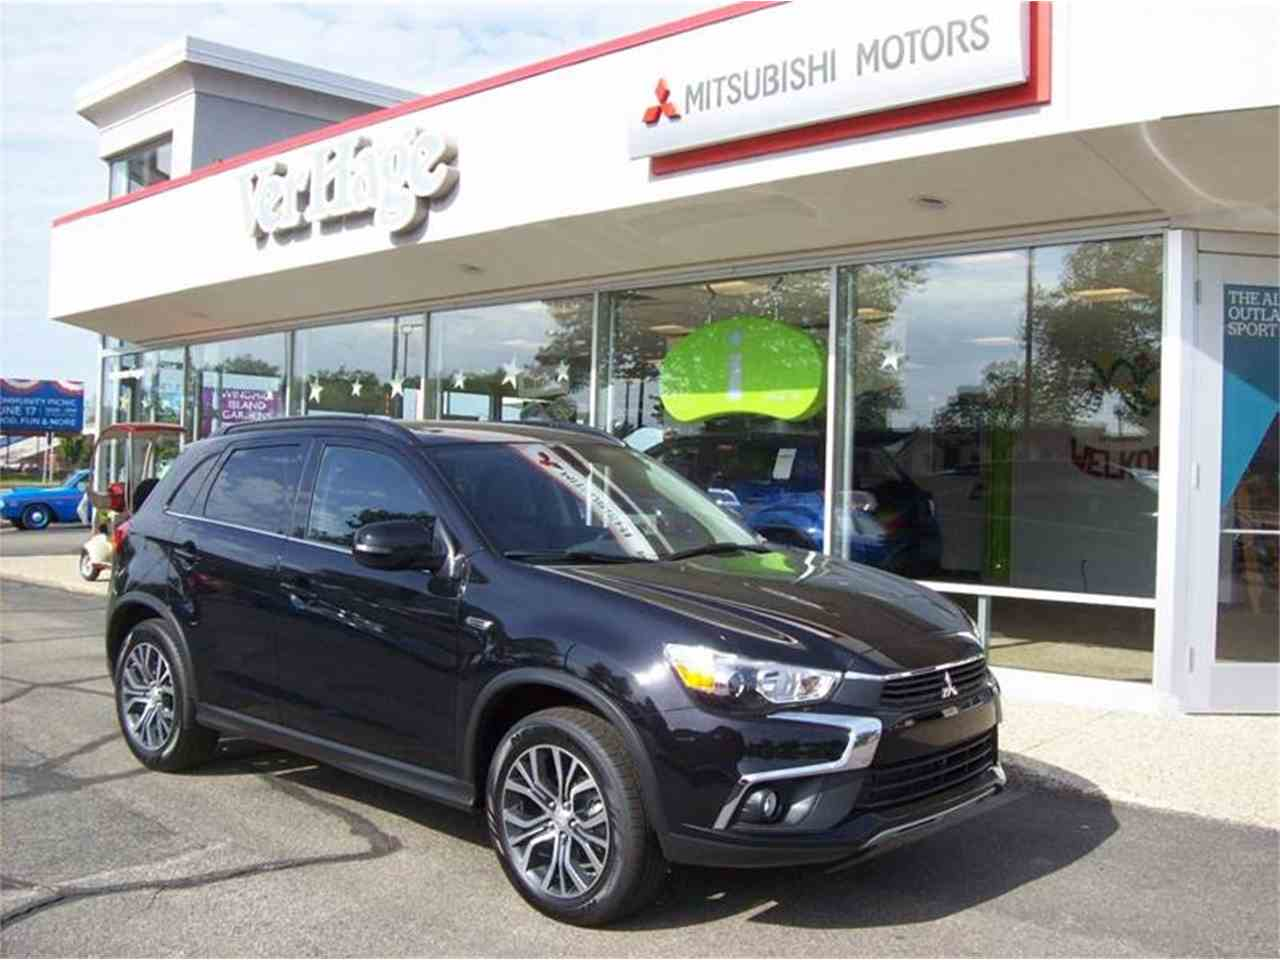 2017 Mitsubishi Outlander for Sale - CC-991234